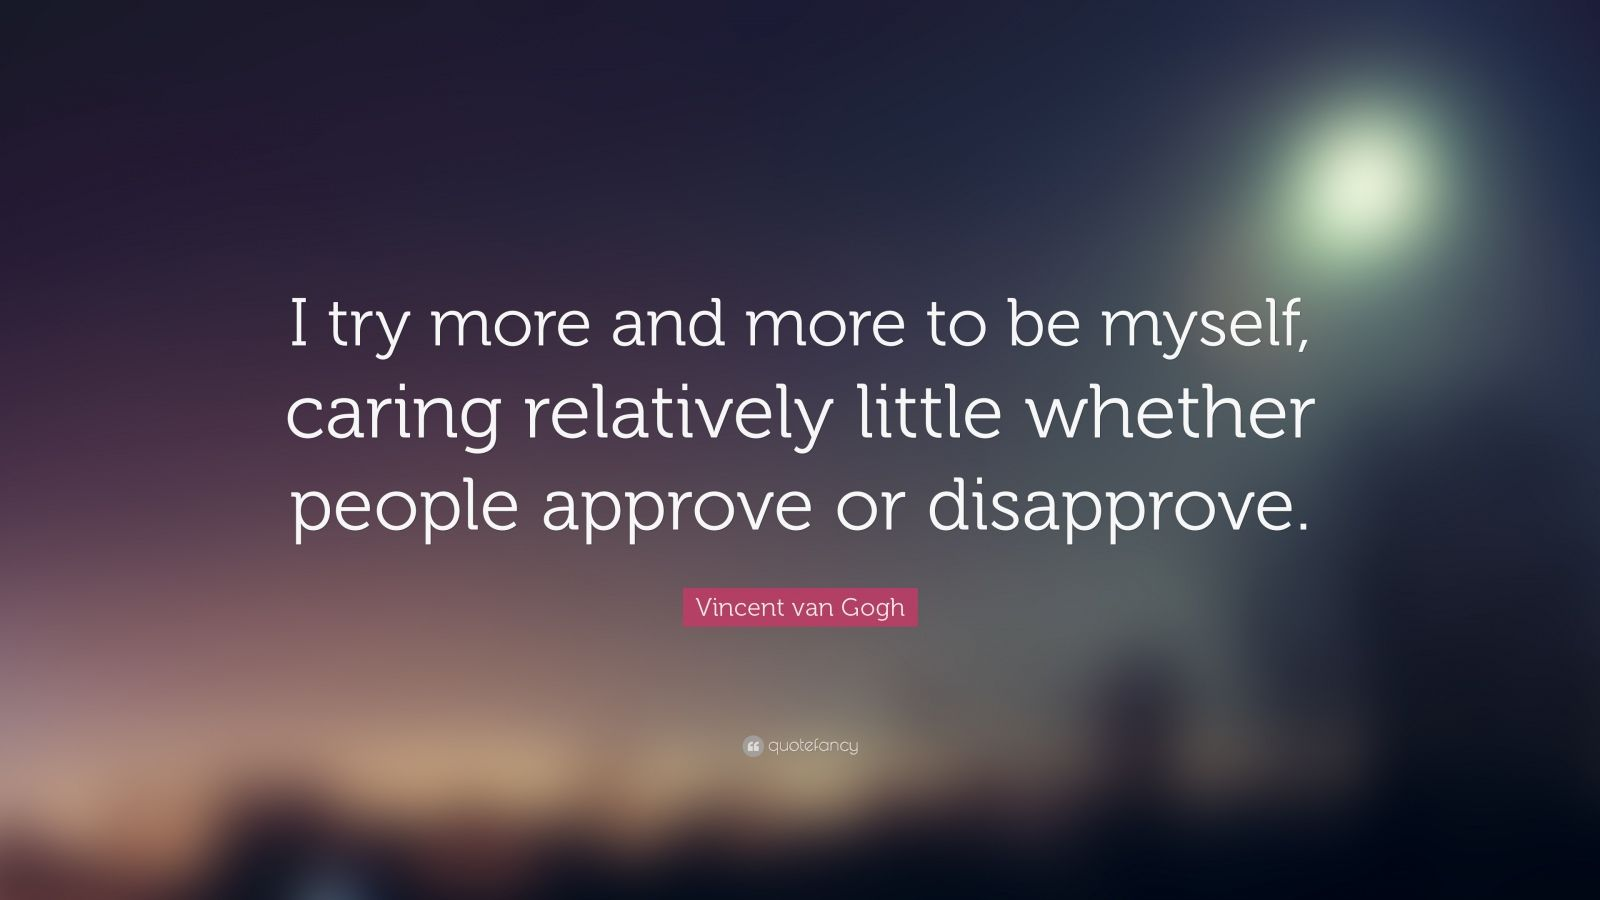 """Vincent van Gogh Quote: """"I try more and more to be myself, caring relatively little whether people approve or disapprove."""""""